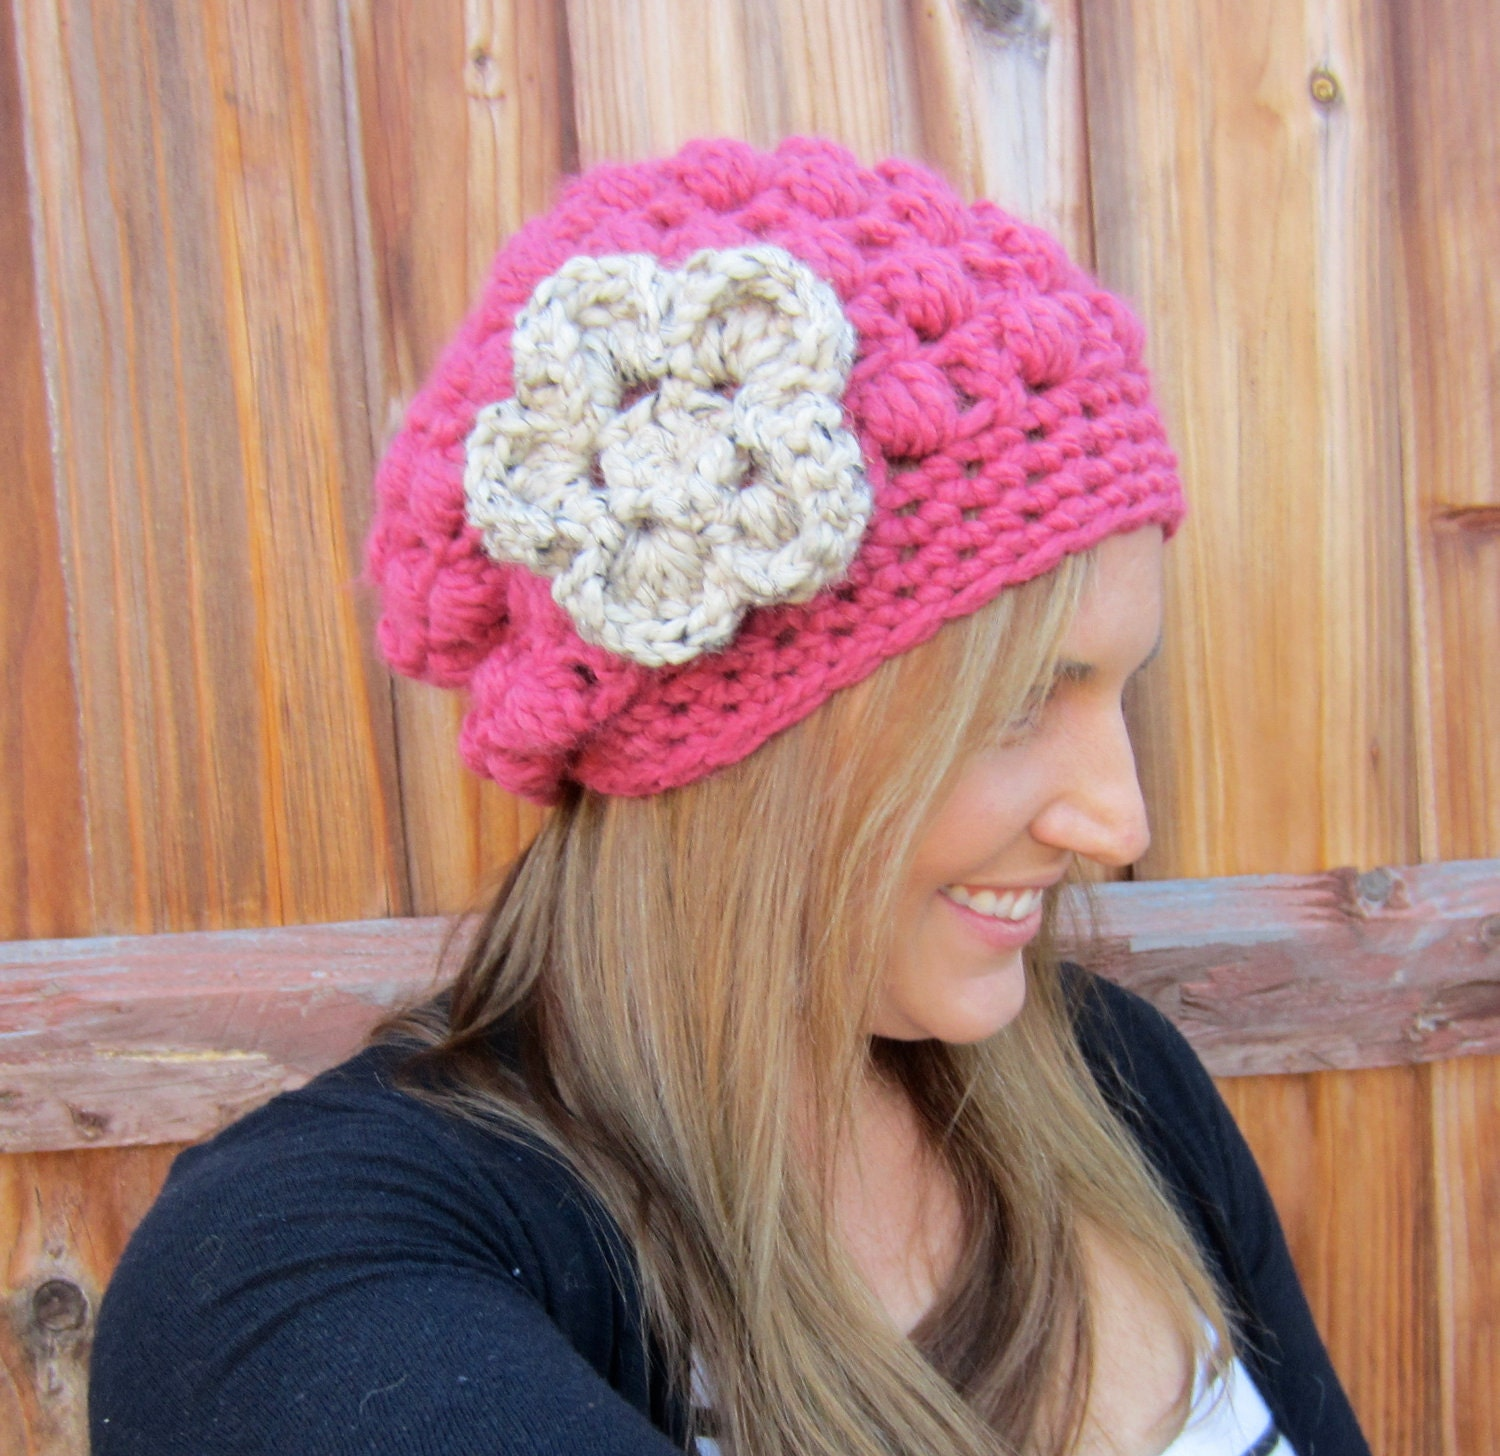 The Michelle -Crochet Womens Slouch Hat, crochet beanie, fall fashion,  - CHOOSE your color -with detachable flower - FREE SHIPPING